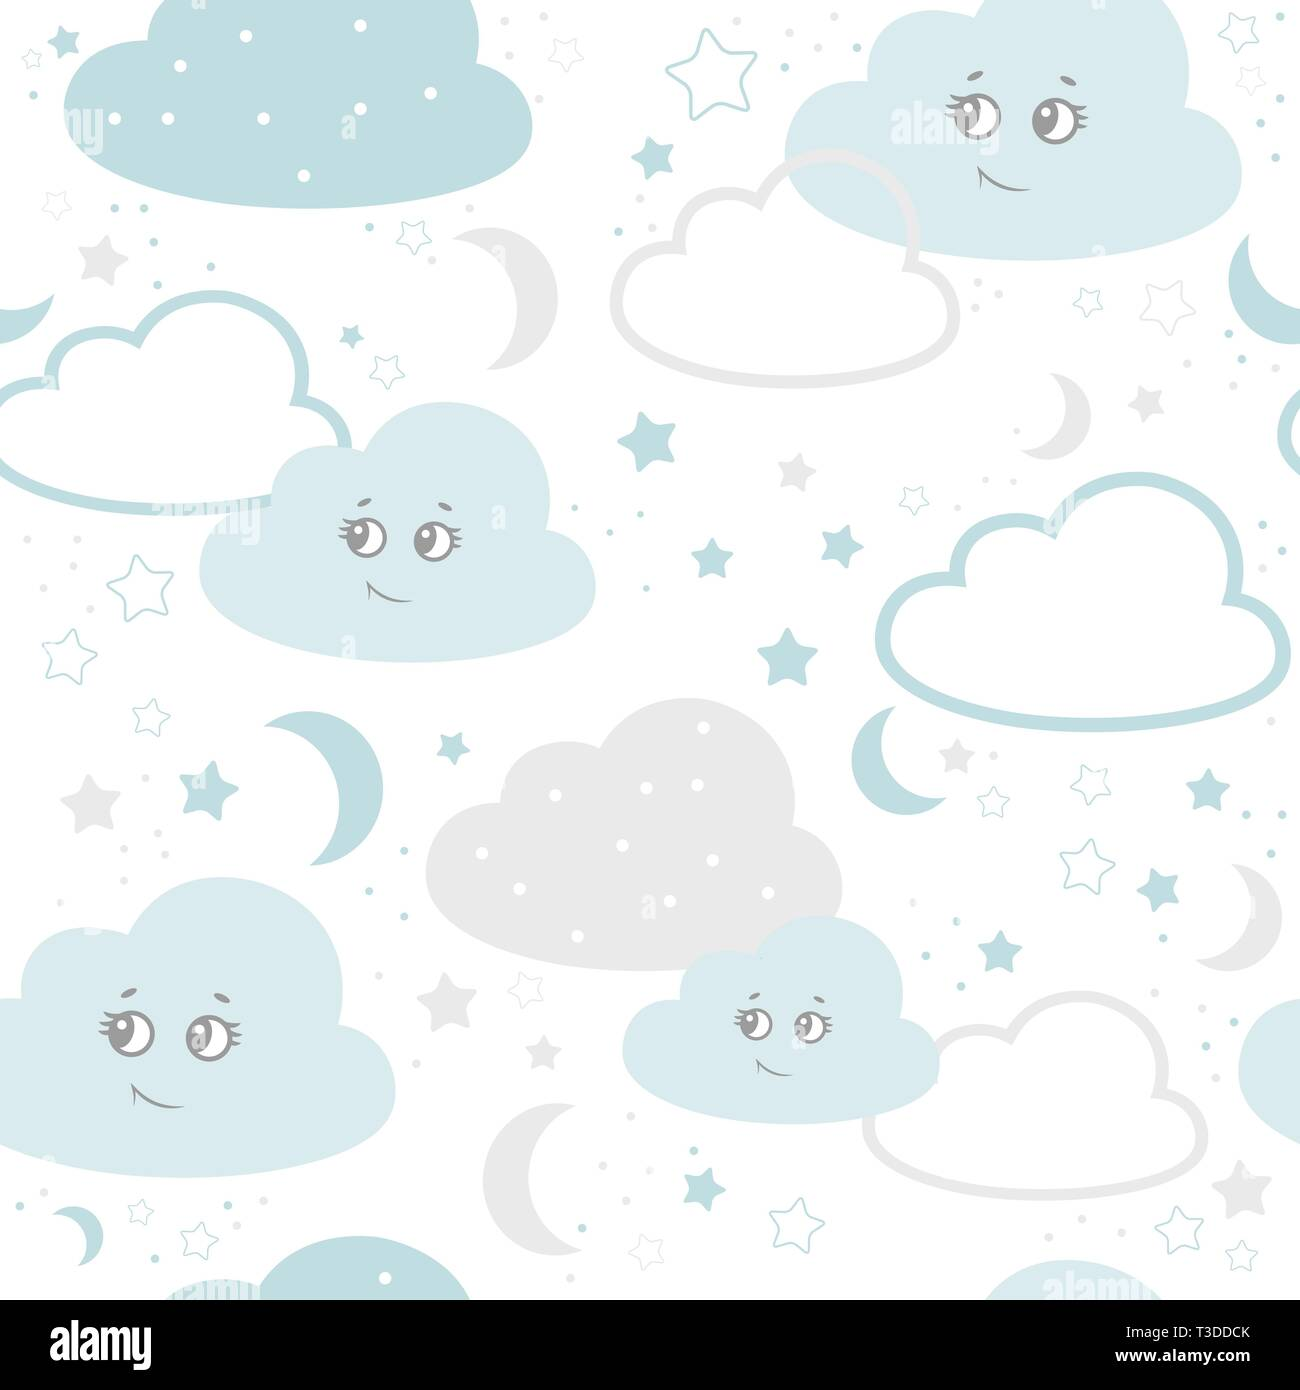 vector illustration baby seamless pattern  Children seamless